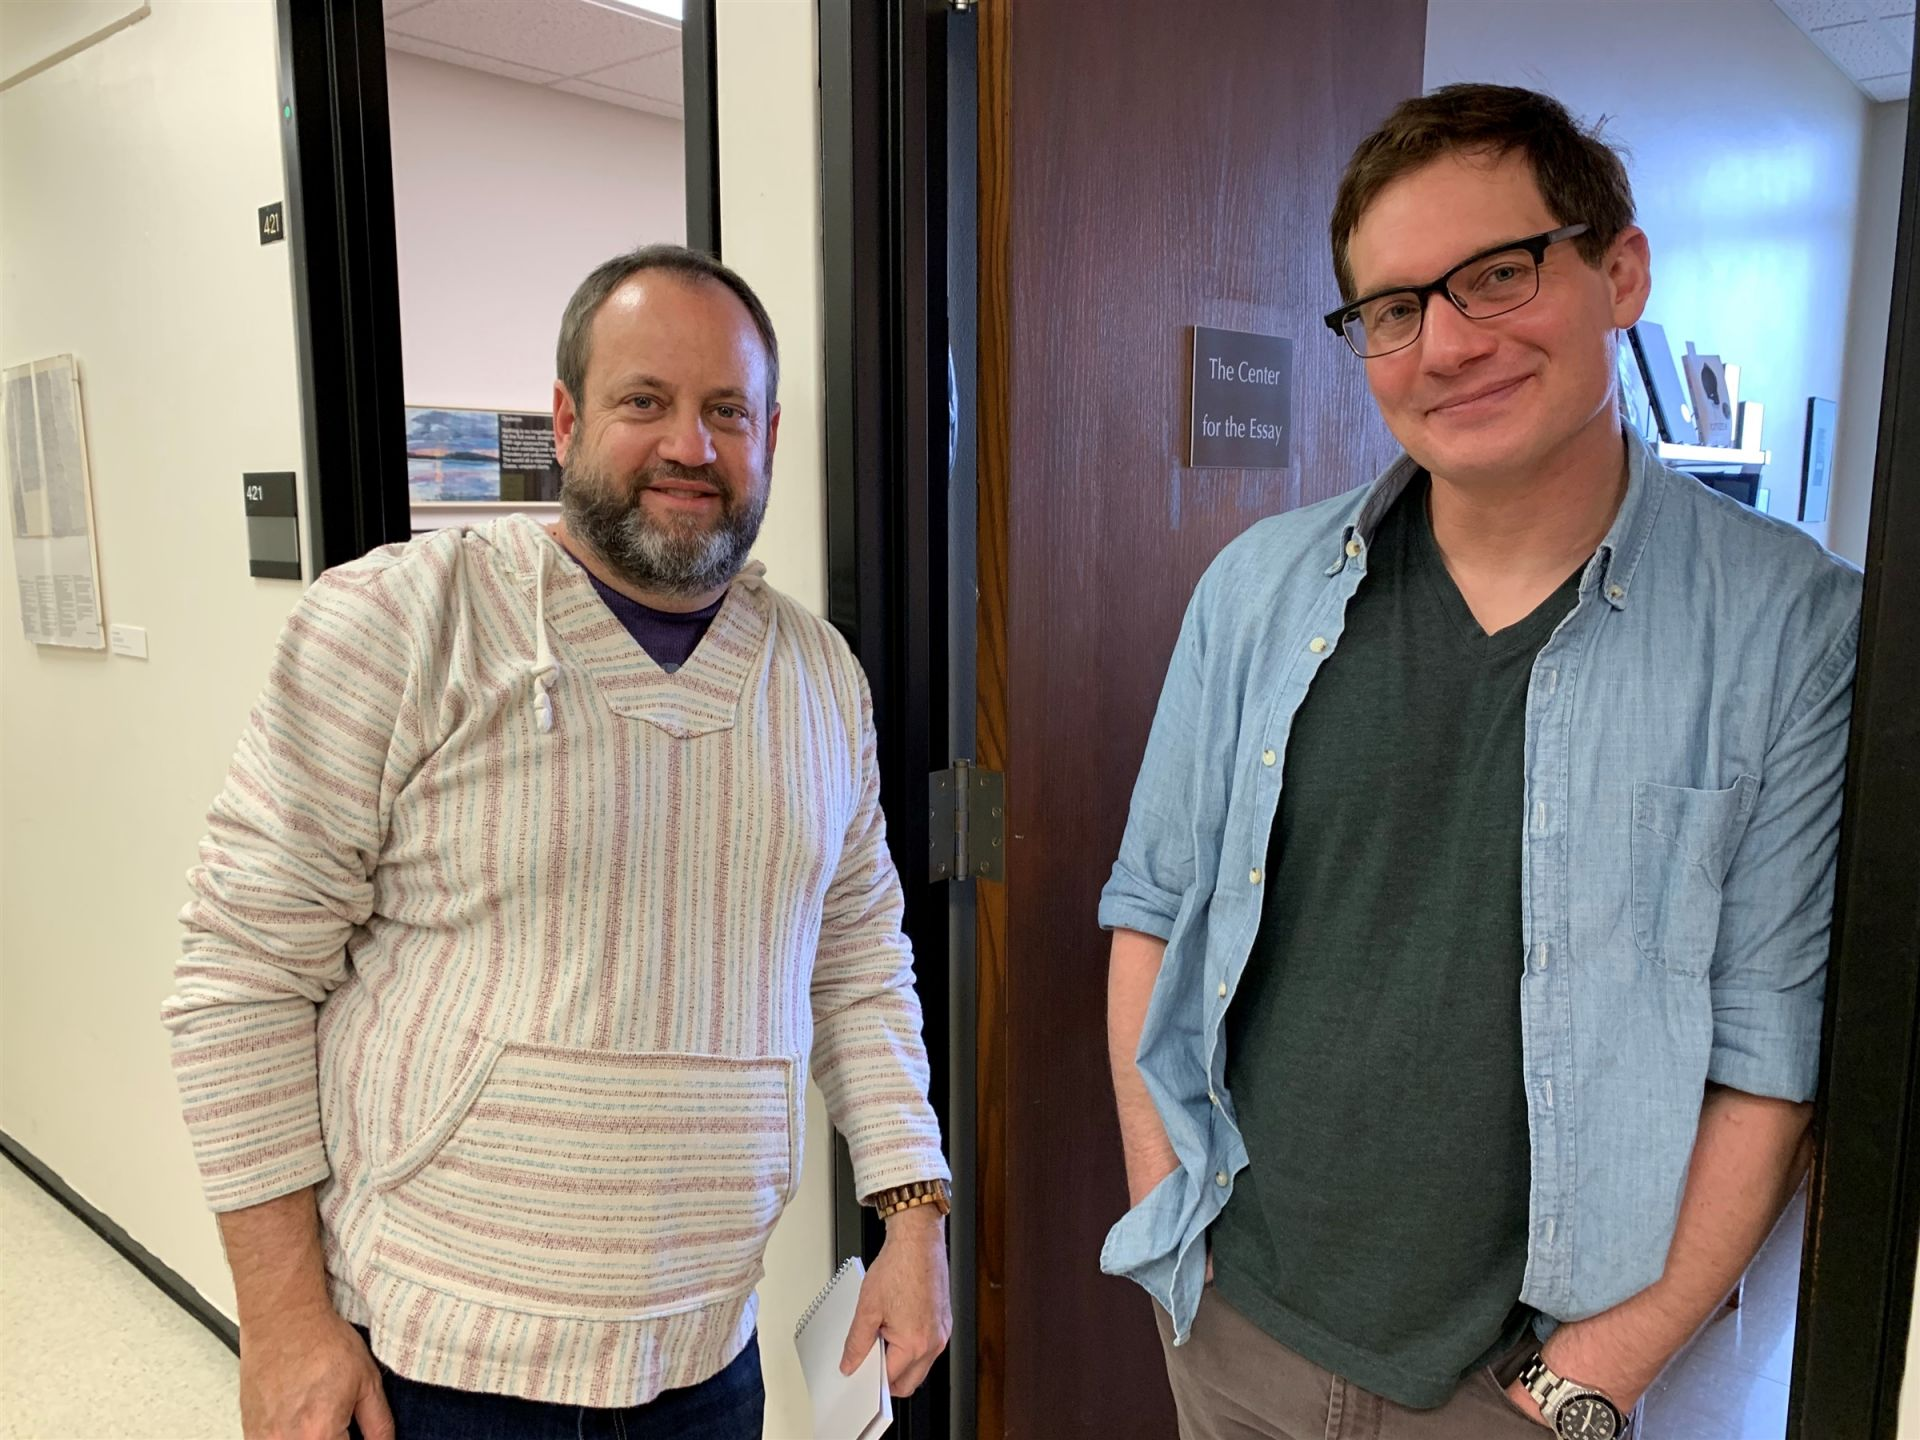 Buckley Upper School English teacher Mitch Kohn and director of the Iowa's Non-Fiction Writers' Workshop John D'Agata piloted the partnership in 2016